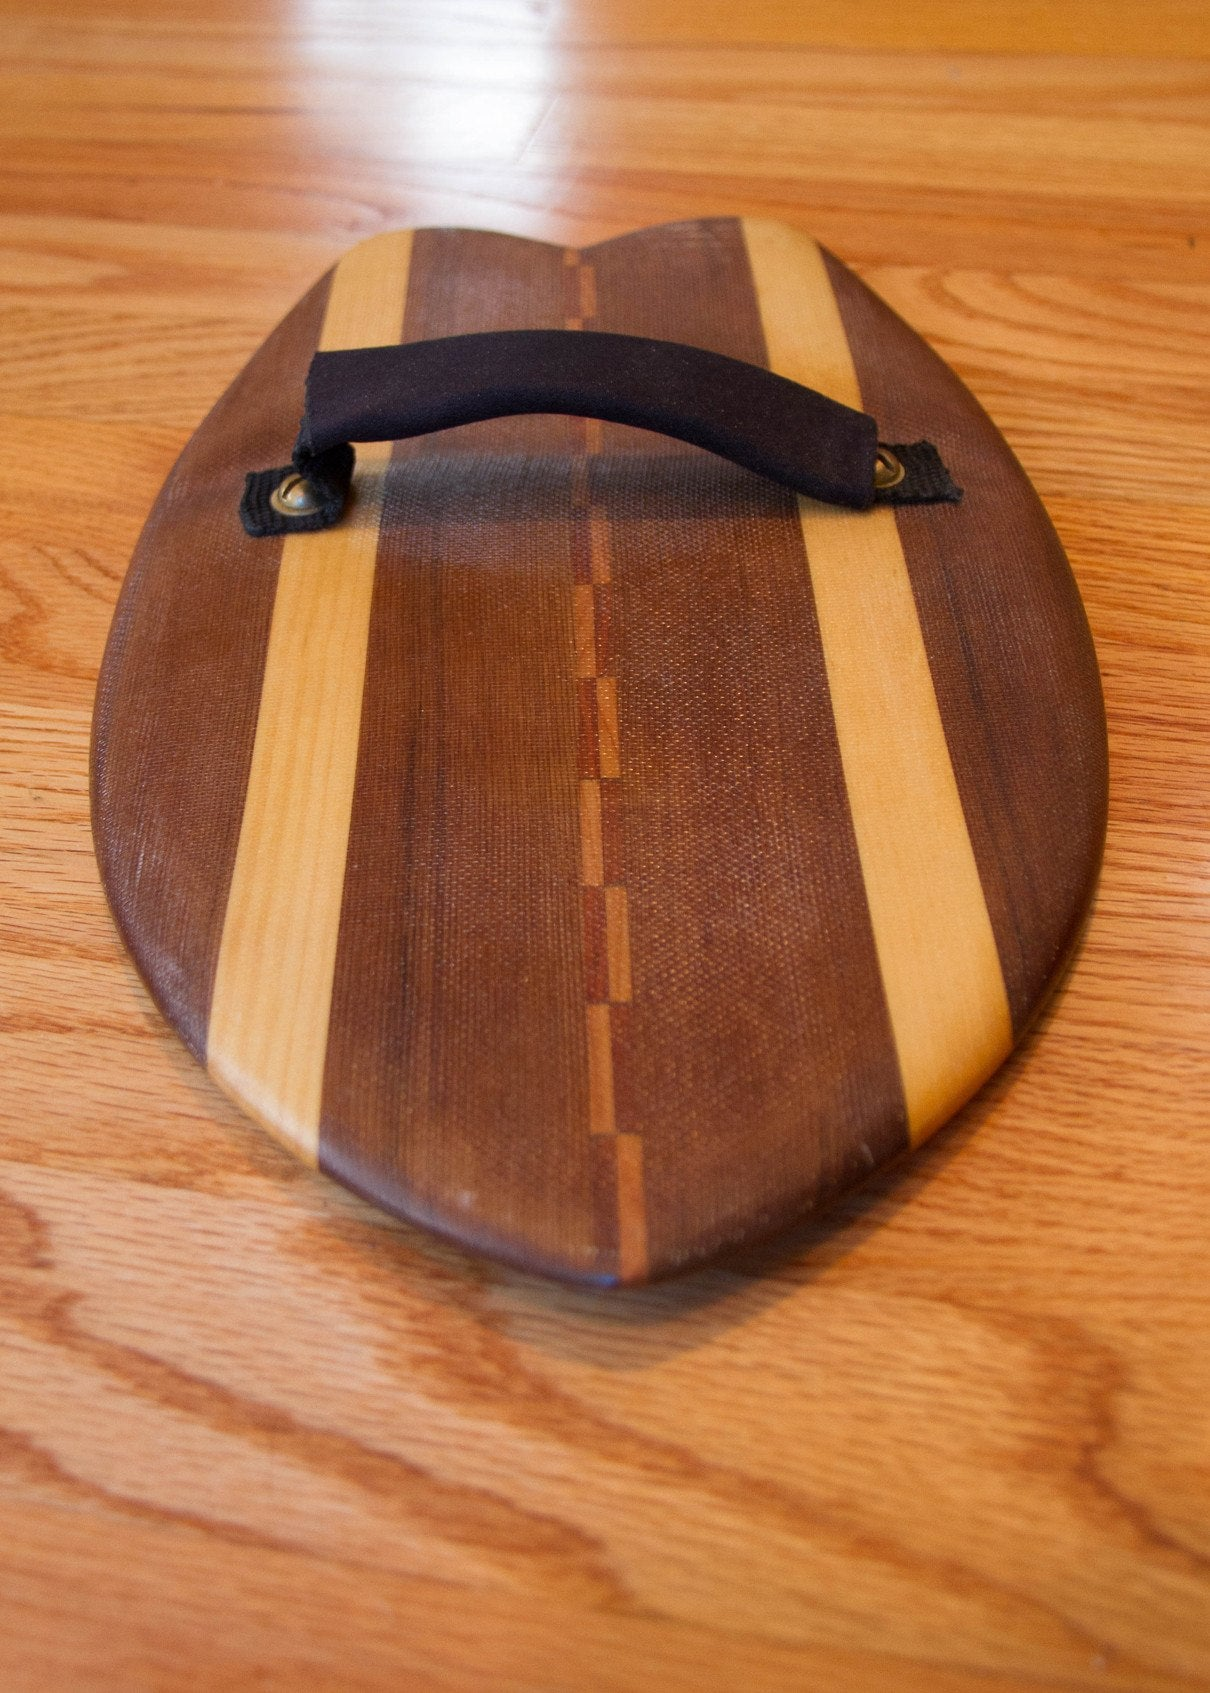 Handplane - Conifer Checkered Old Growth Handplane